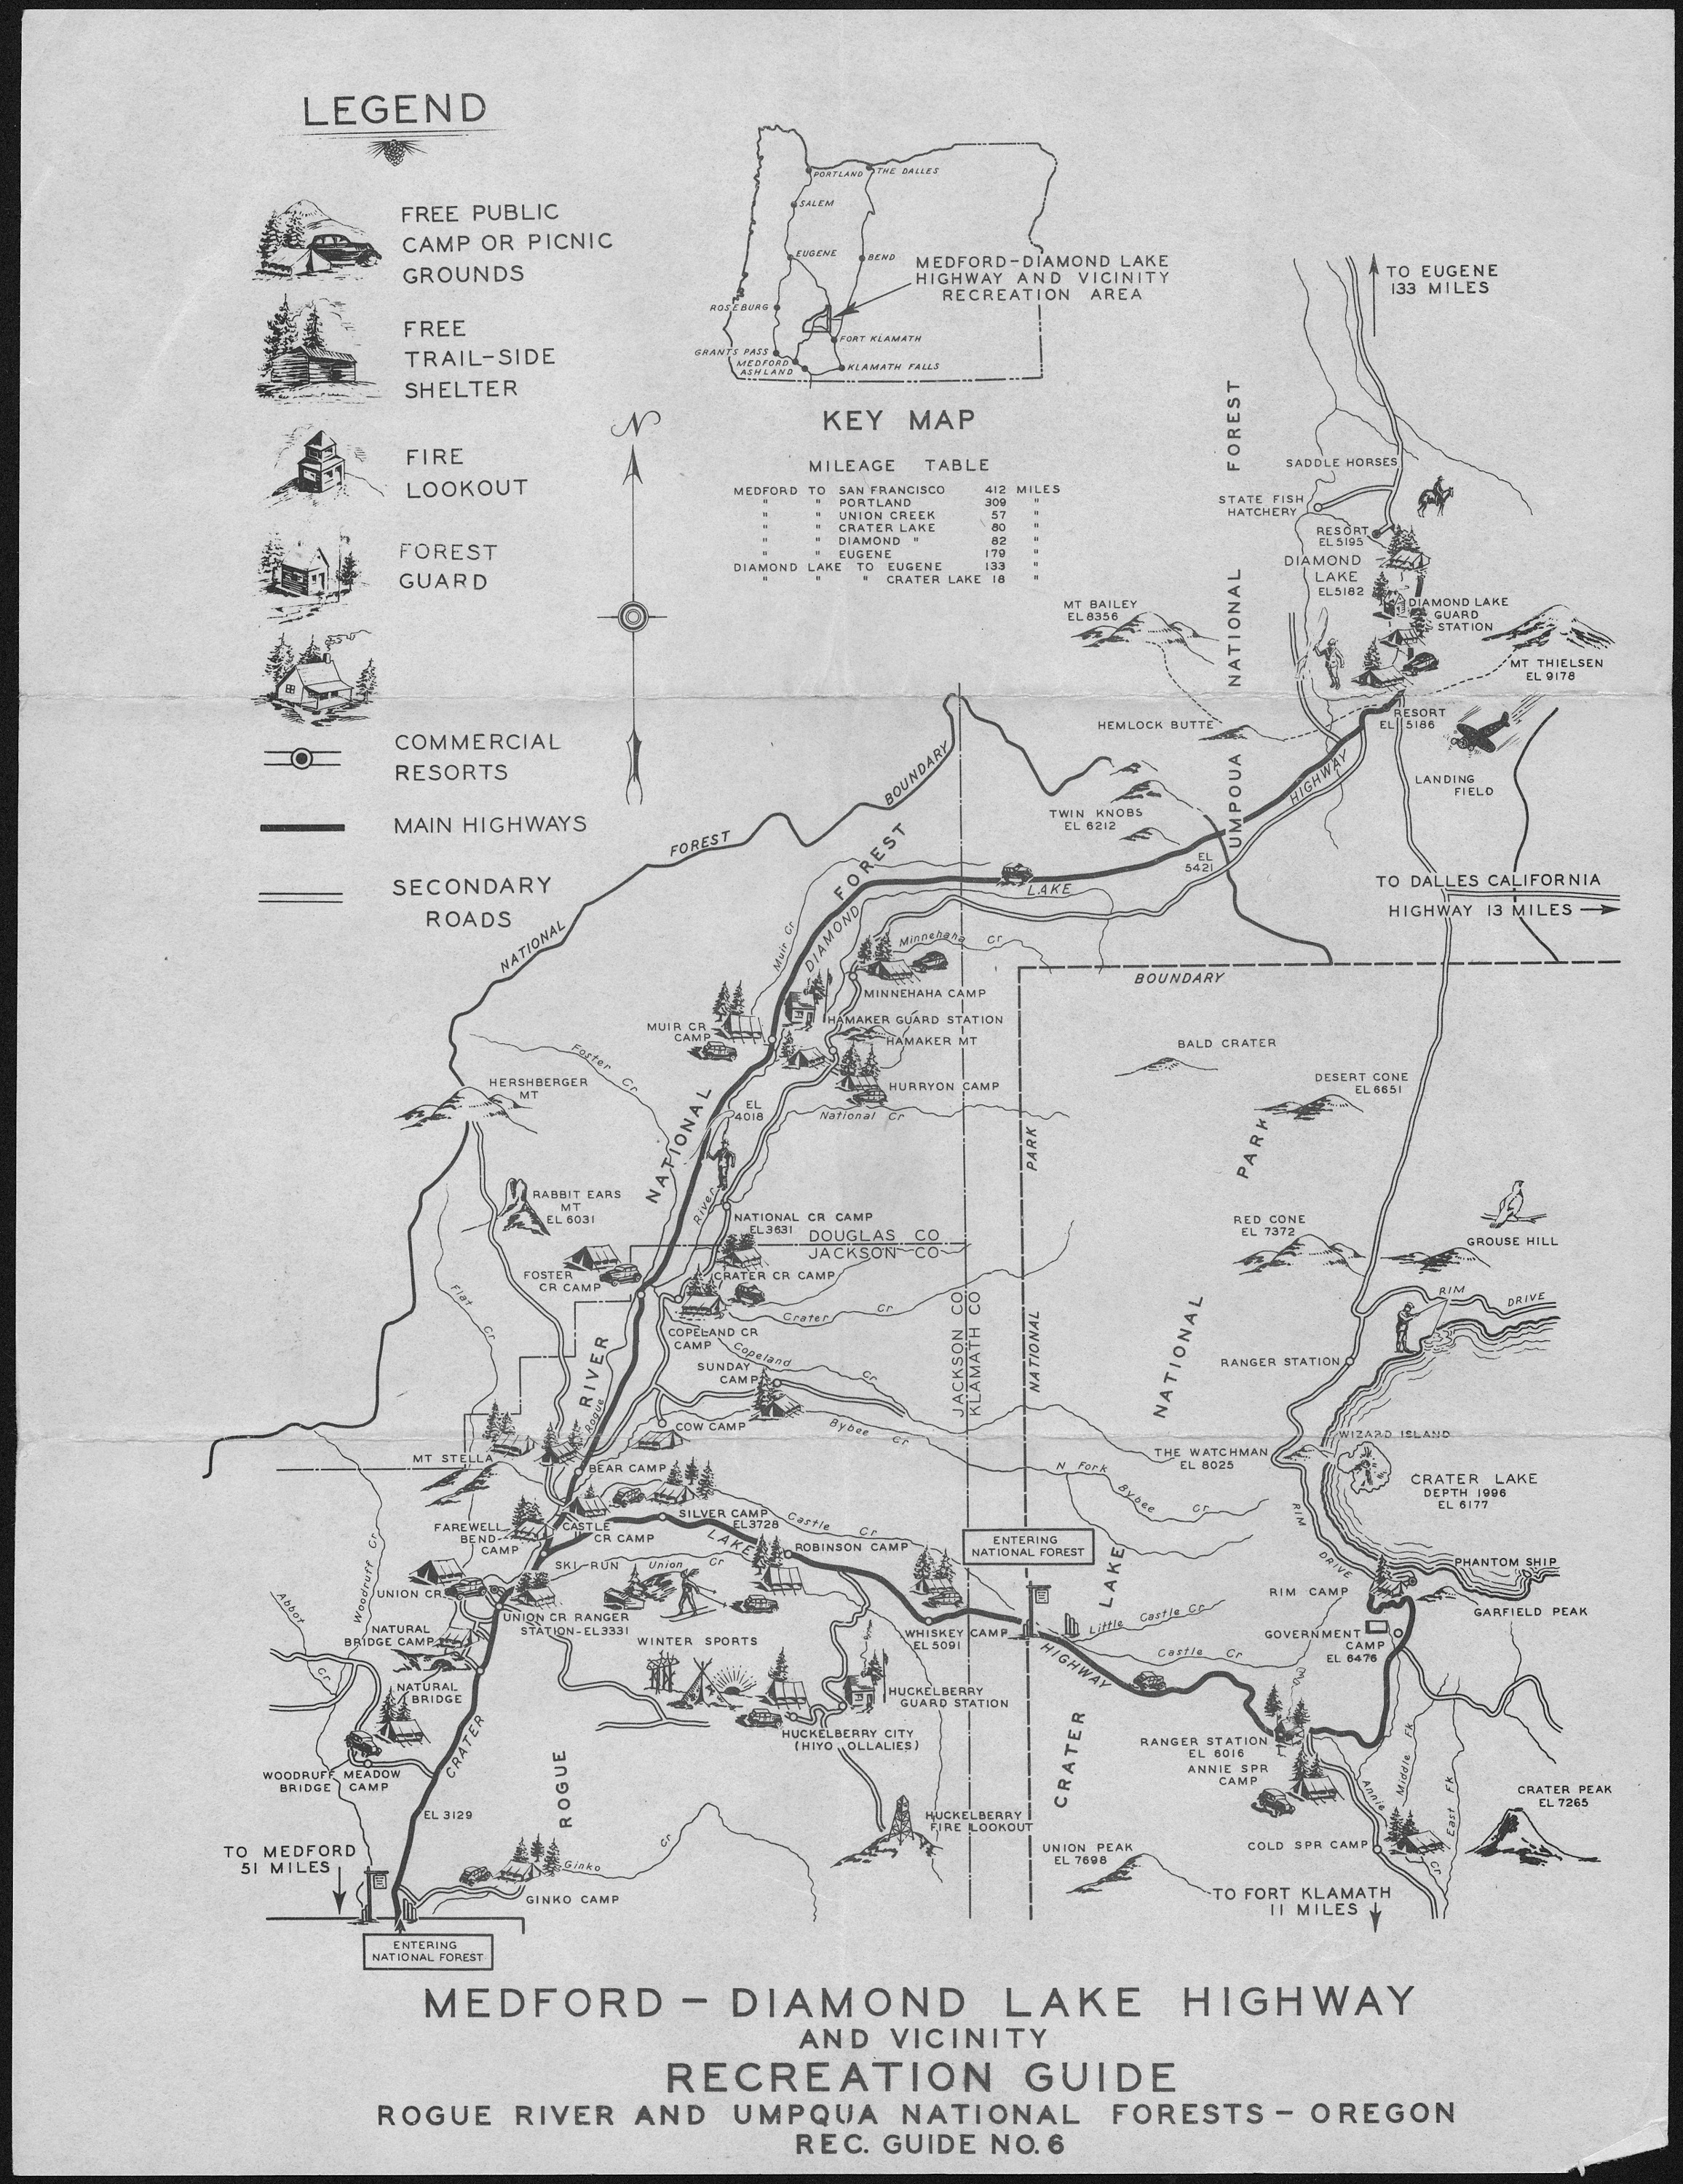 Umpqua Oregon Map.File Medford Diamond Lake Highway Recreation Guide Rogue River And